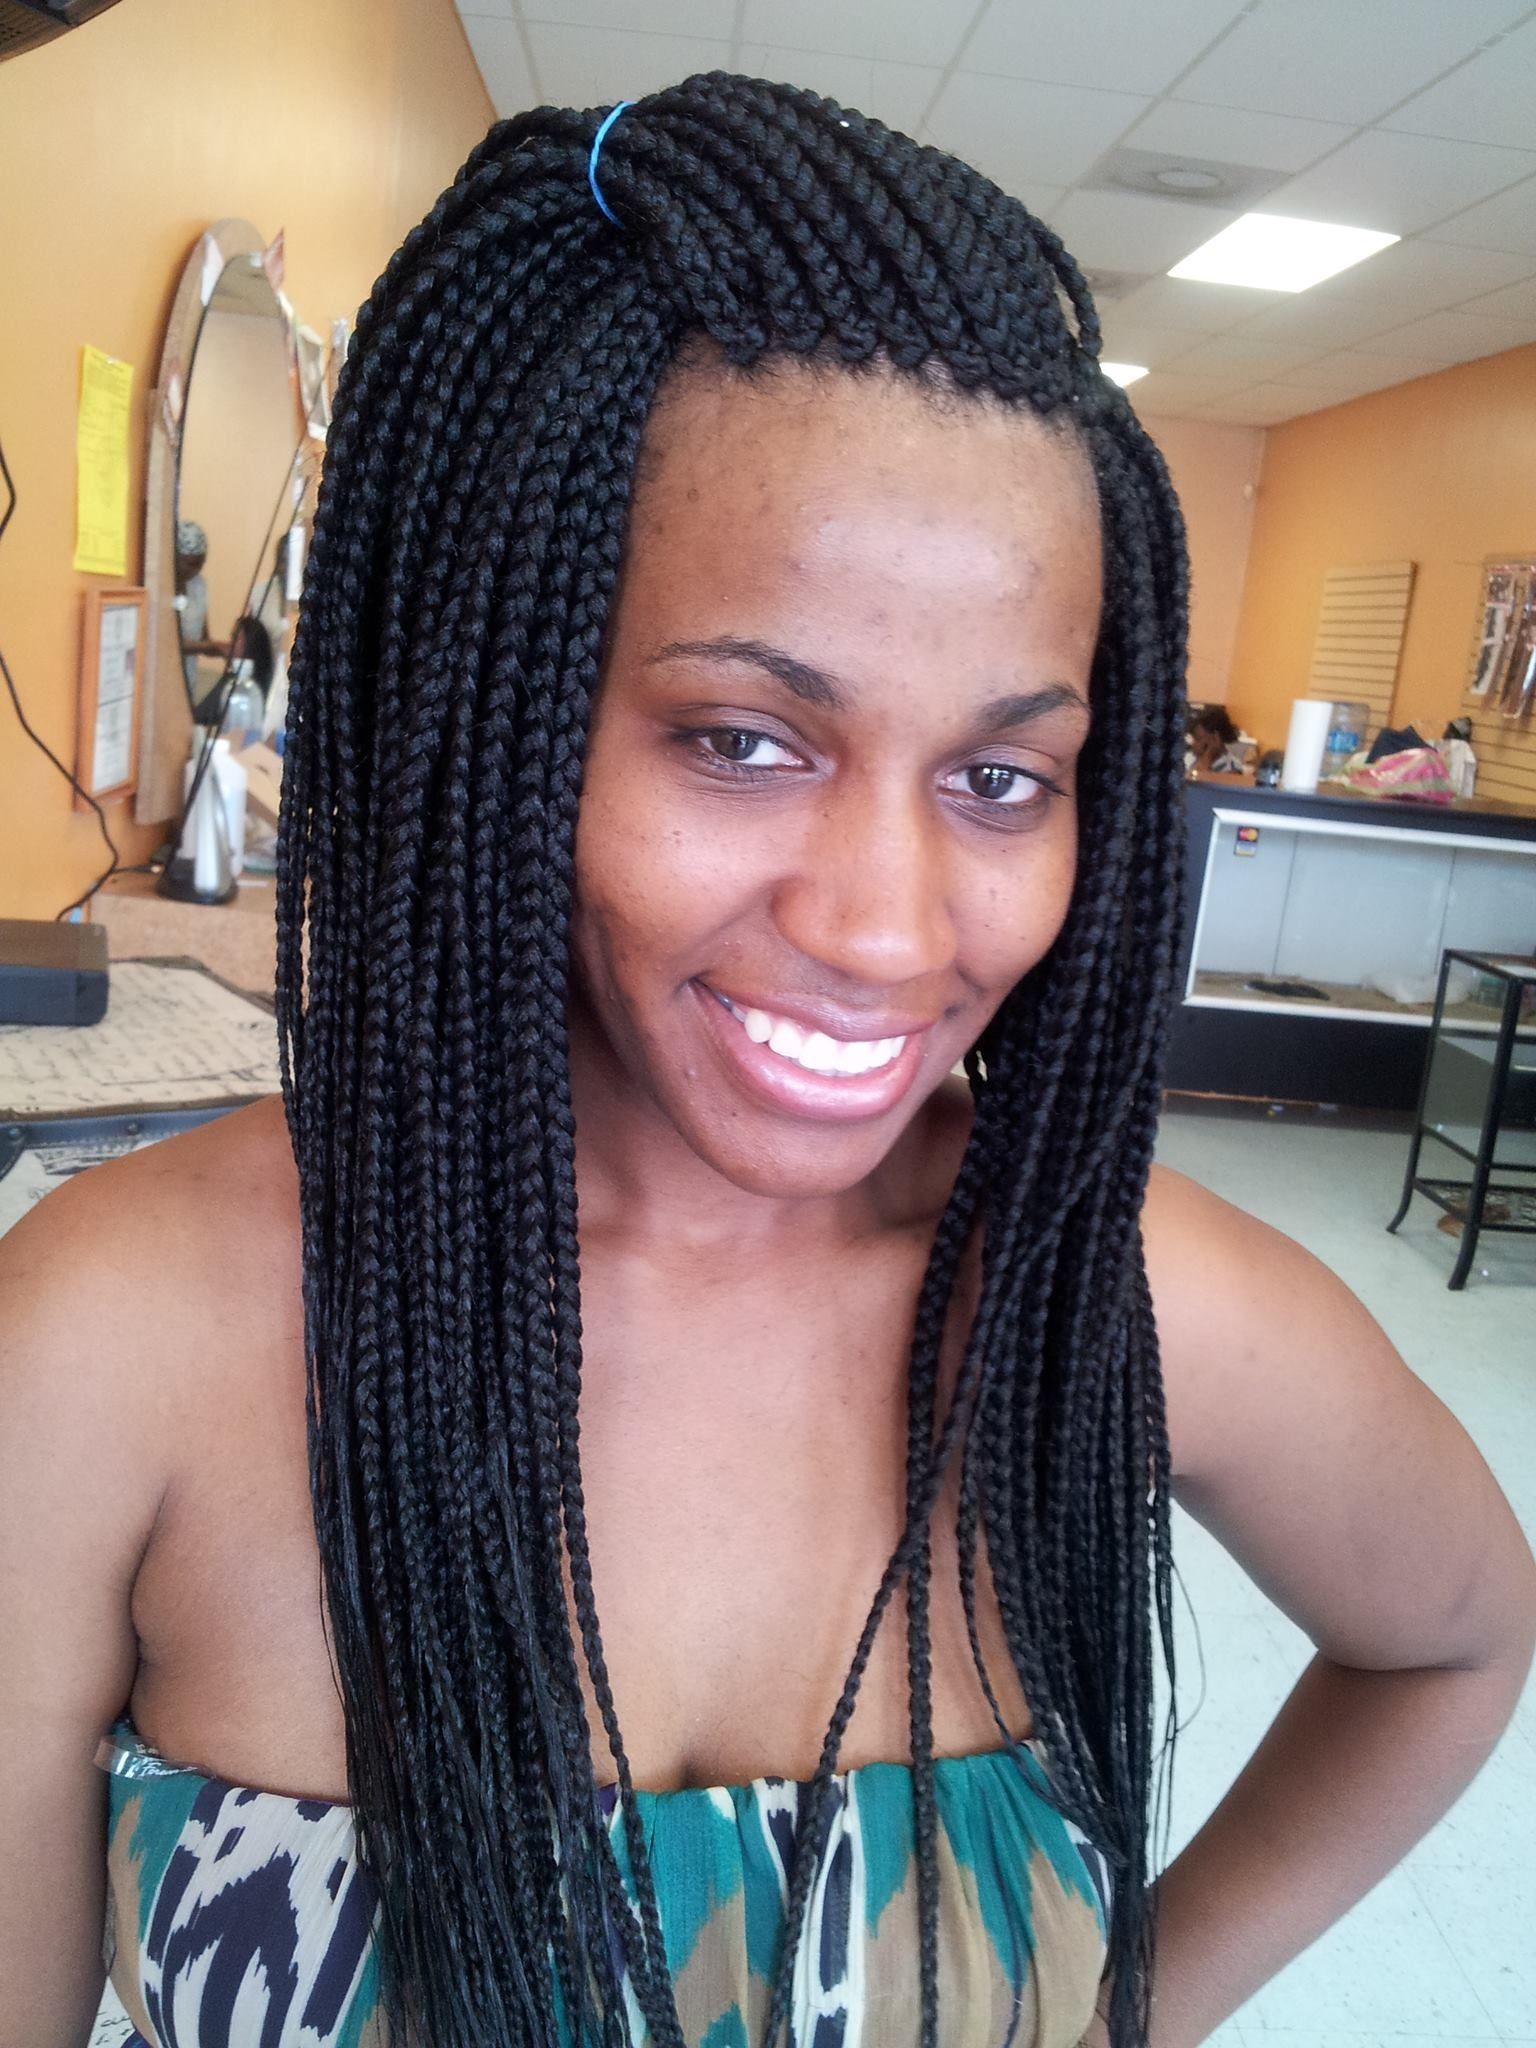 Pin By Zay African Hair Braiding On Long Single Braids African Braids Hairstyles African Braids Single Braids